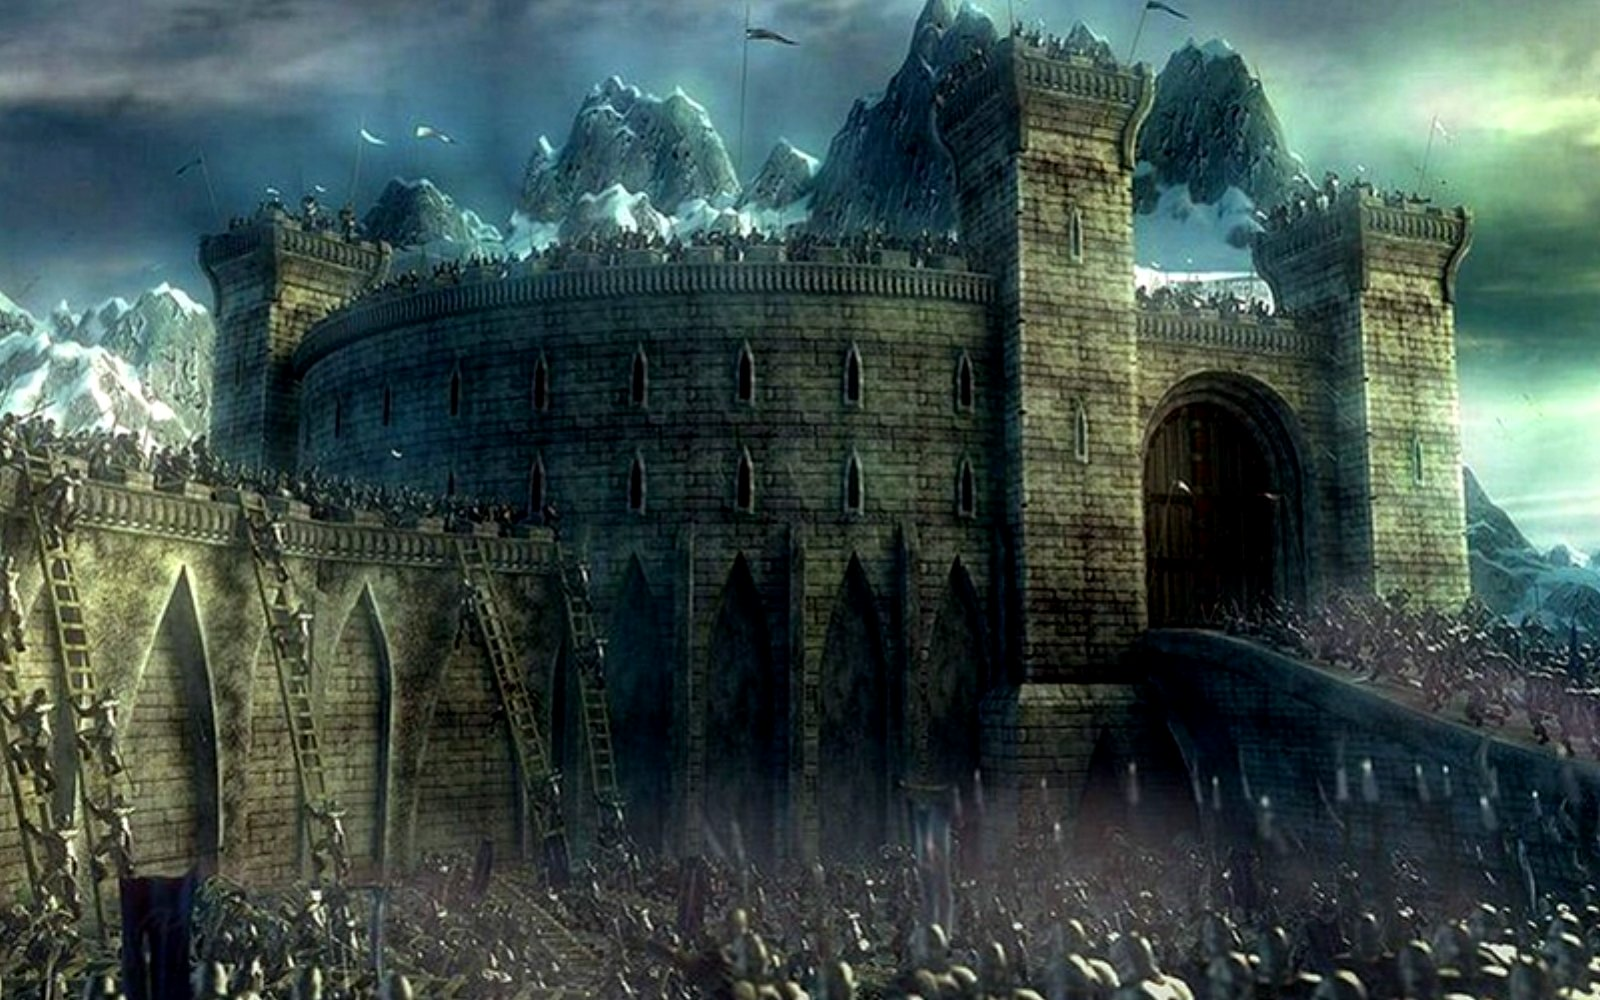 Drawn wallpaper castle Fantasy Background and backgrounds